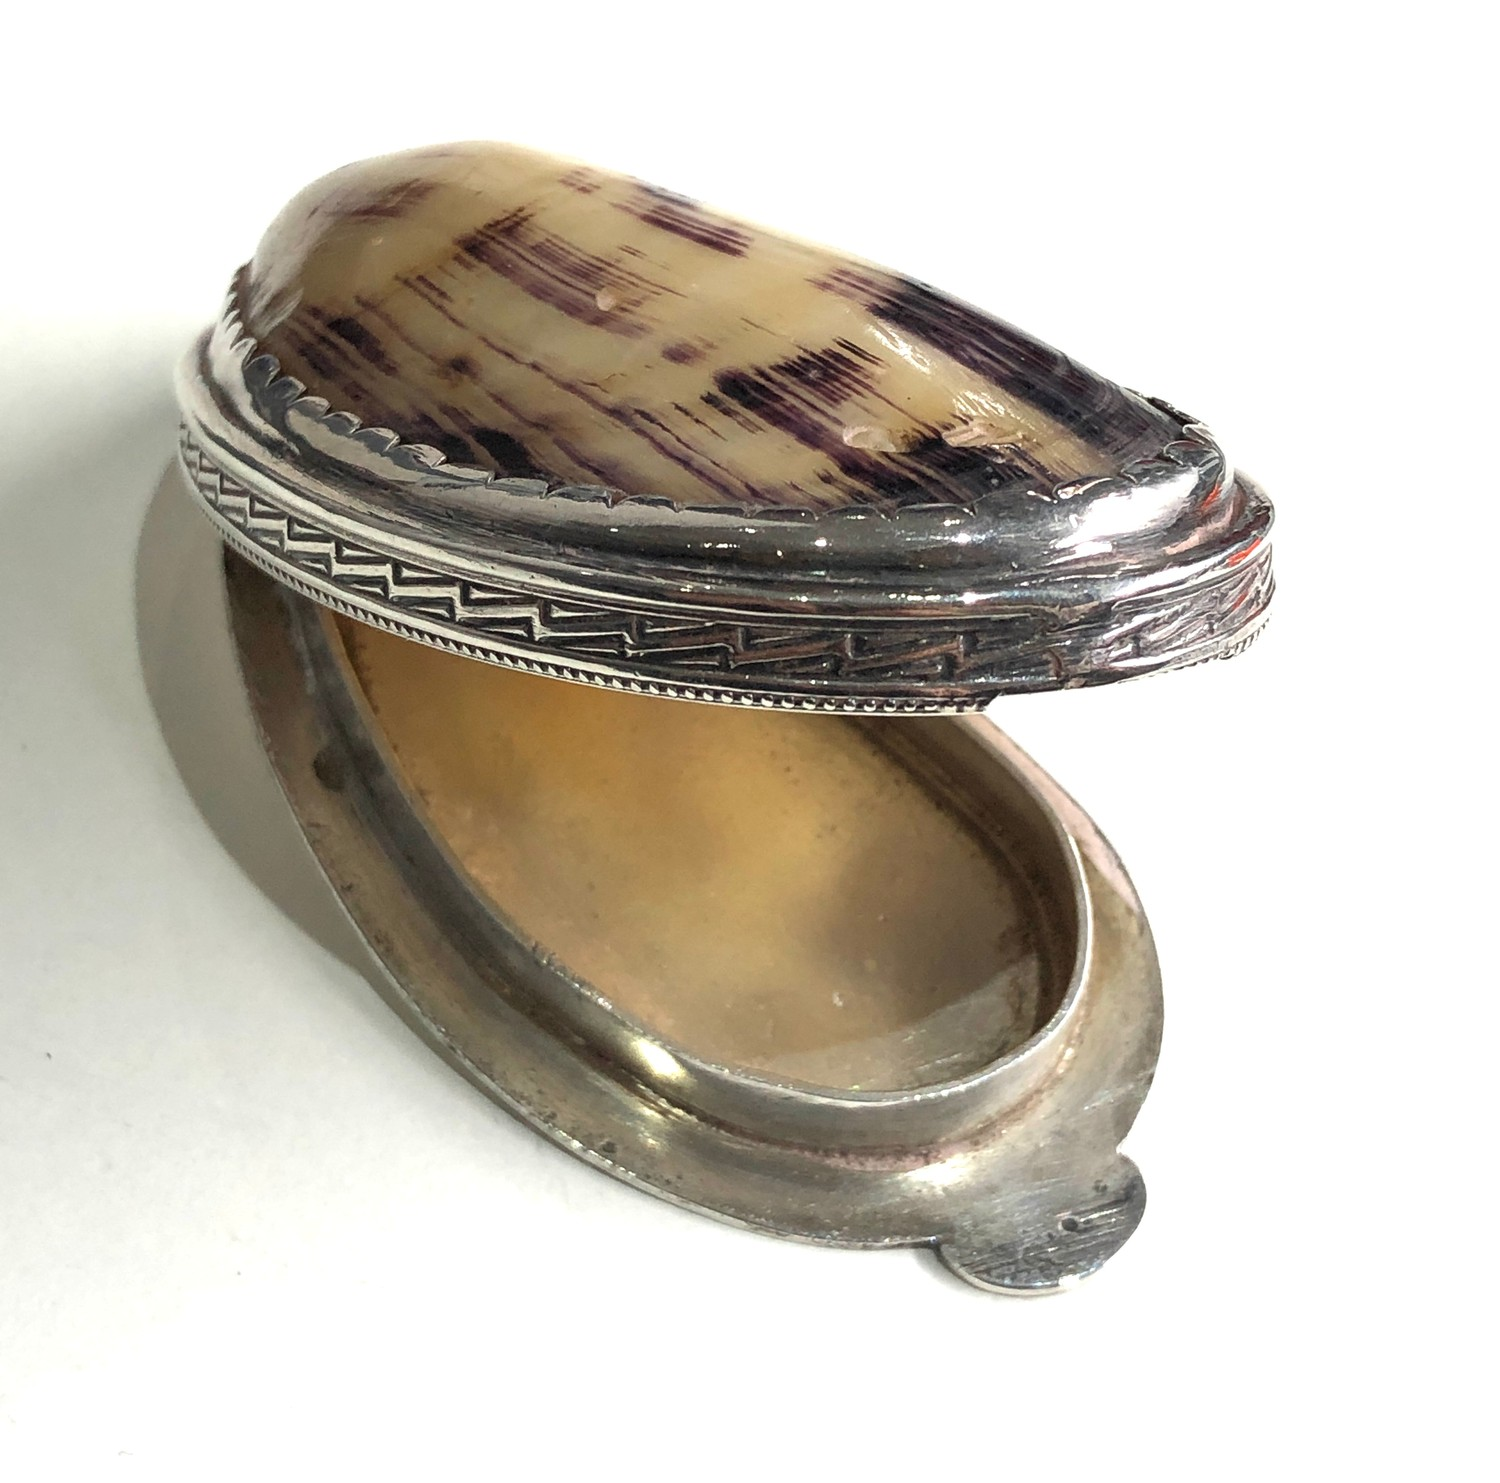 Antique silver and shell snuff box measures approx 8.3cm by 4cm xrt as silver no hallmarks - Image 5 of 6